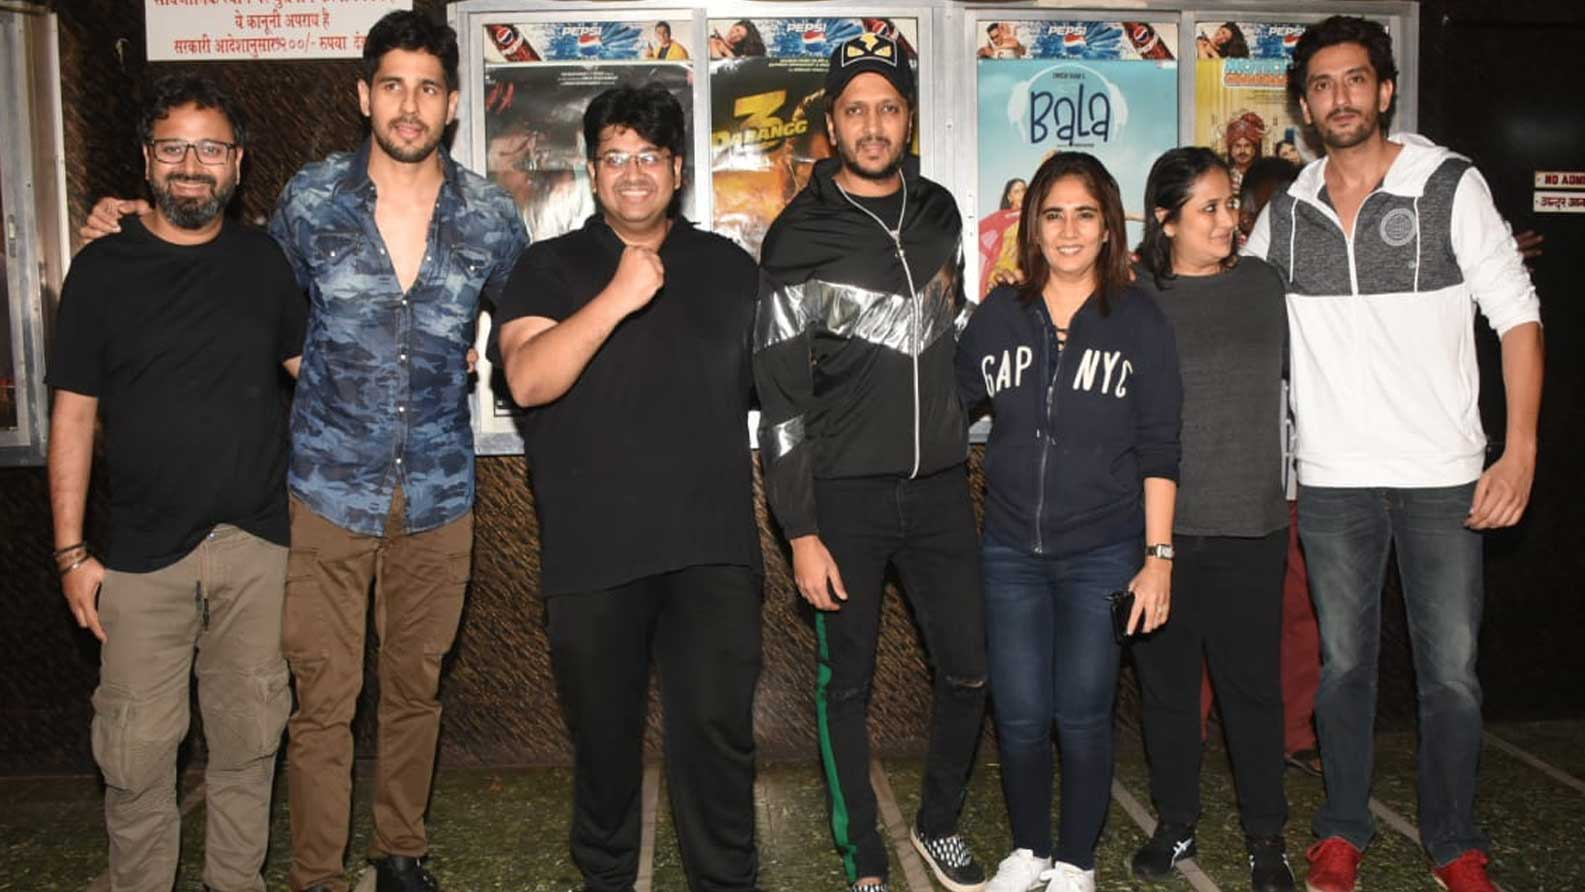 Sidharth Malhotra, Riteish Deshmukh visit multiplex to watch their film 'Marjaavaan'